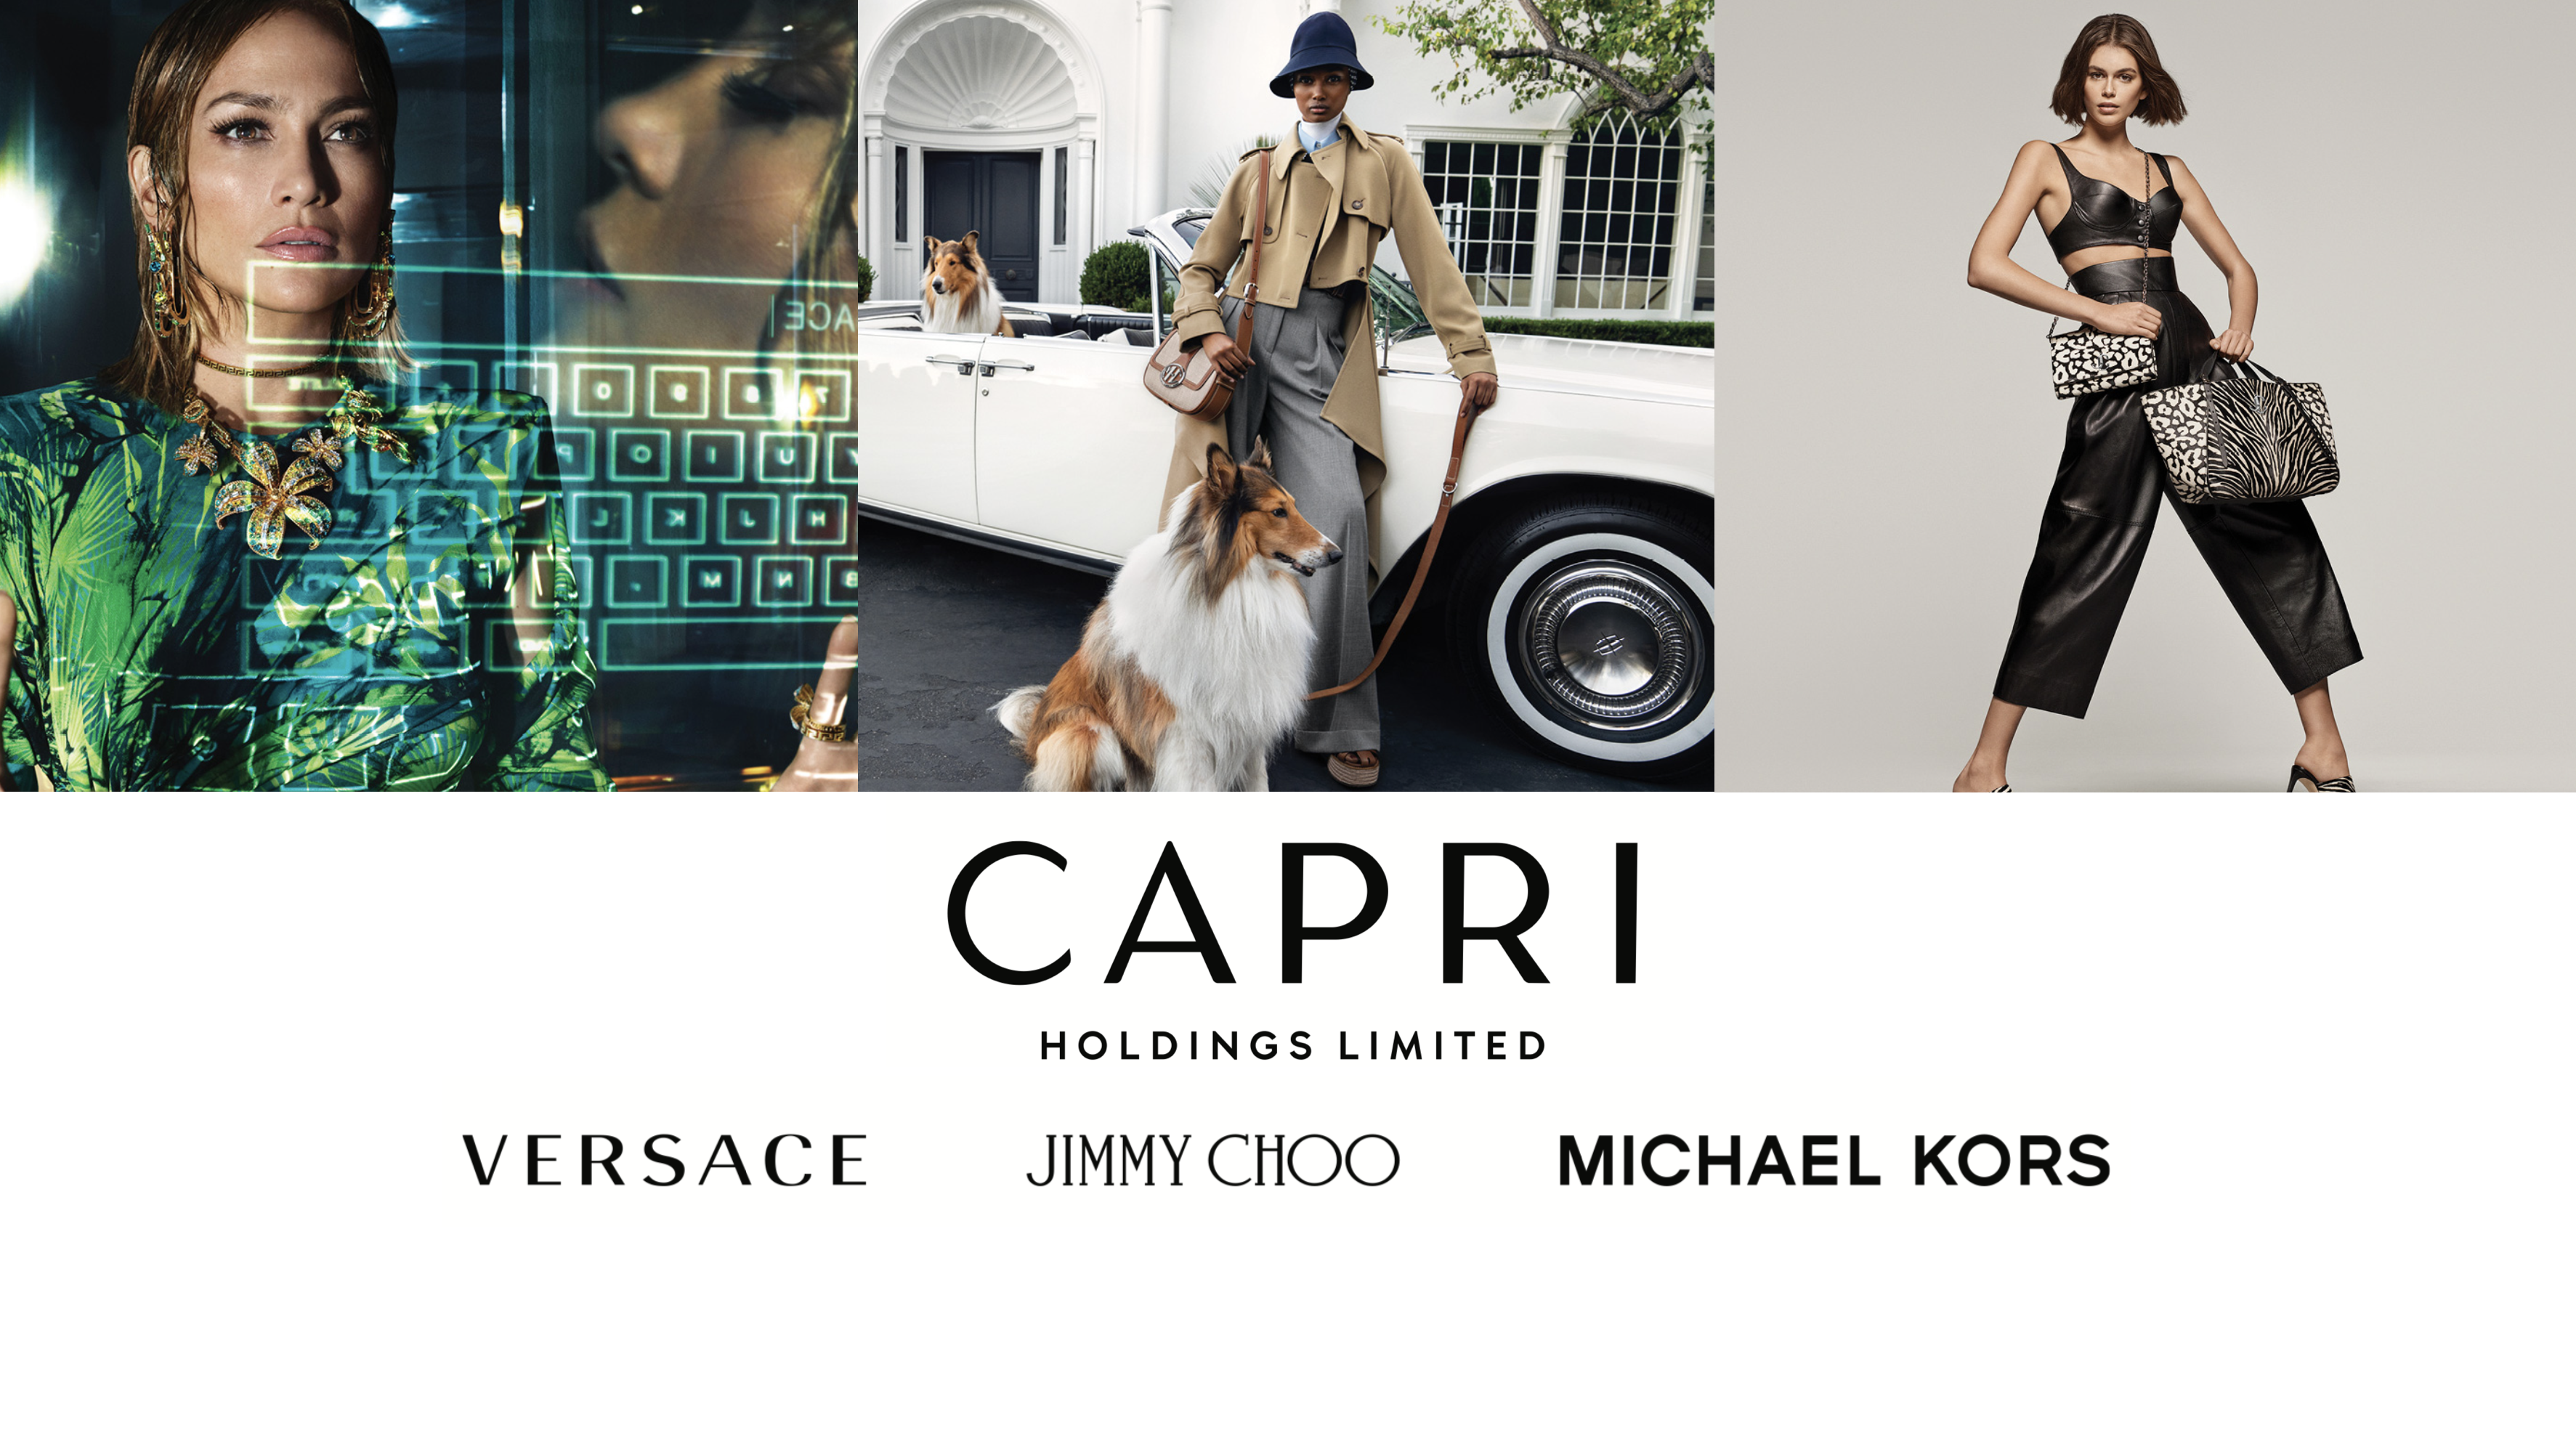 Capri Holdings (Michael Kors, Versace, and Jimmy Choo) Donate + Million to COVID-19 Relief Efforts